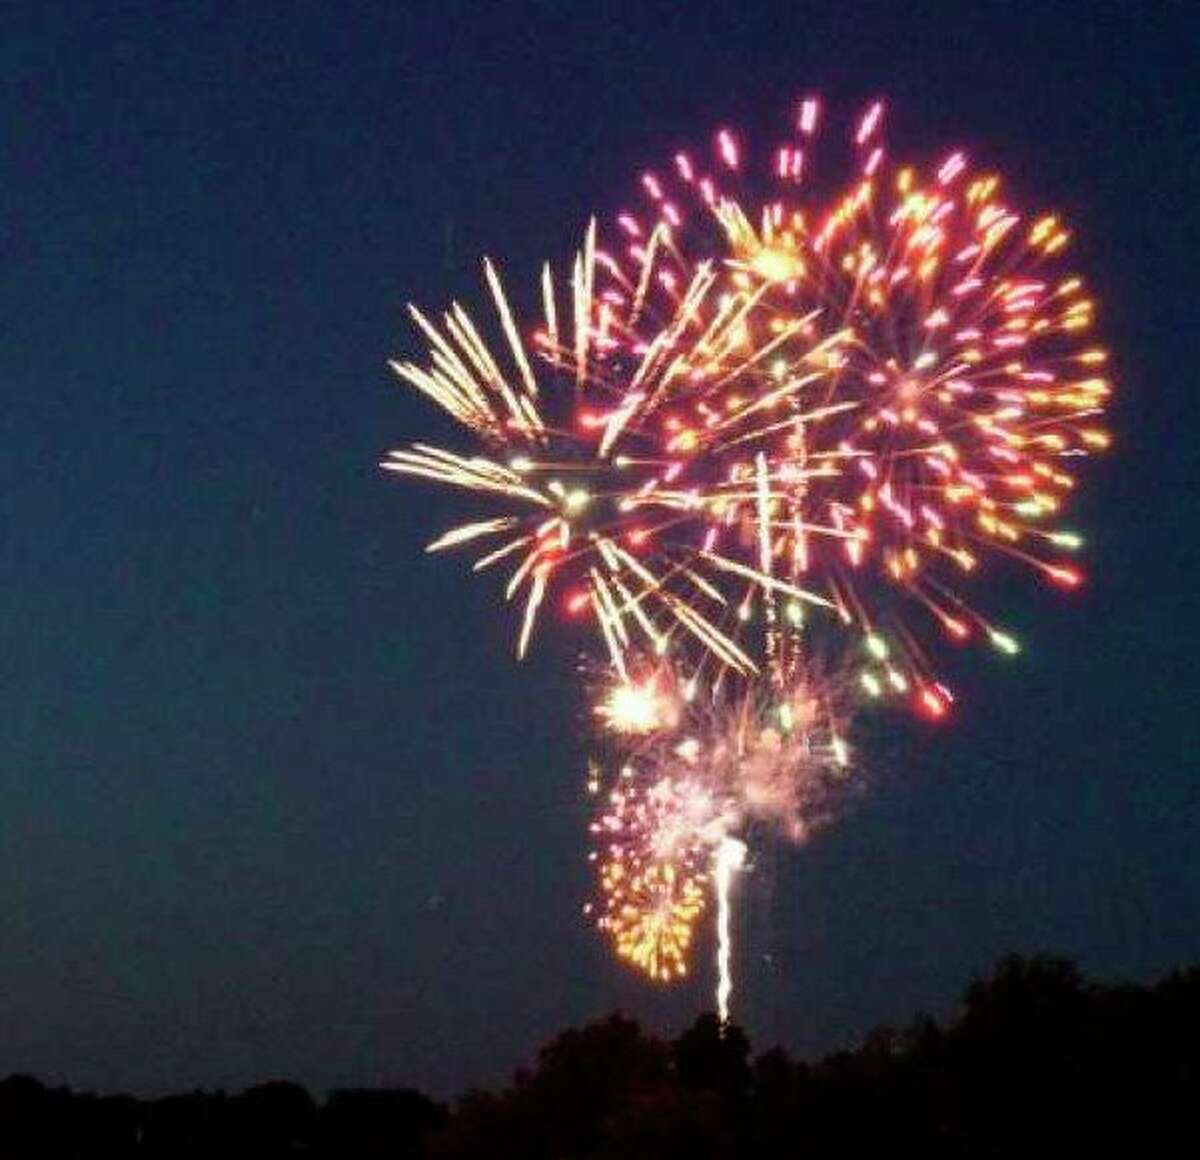 Residents of Reed City and the surrounding area may yet be able to enjoy fireworks on the Fourth of July. The Reed City city council is considering hosting their own fireworks in conjunction with Richmond township this year. The decision is not final as of yet. (Herald Review file photo)